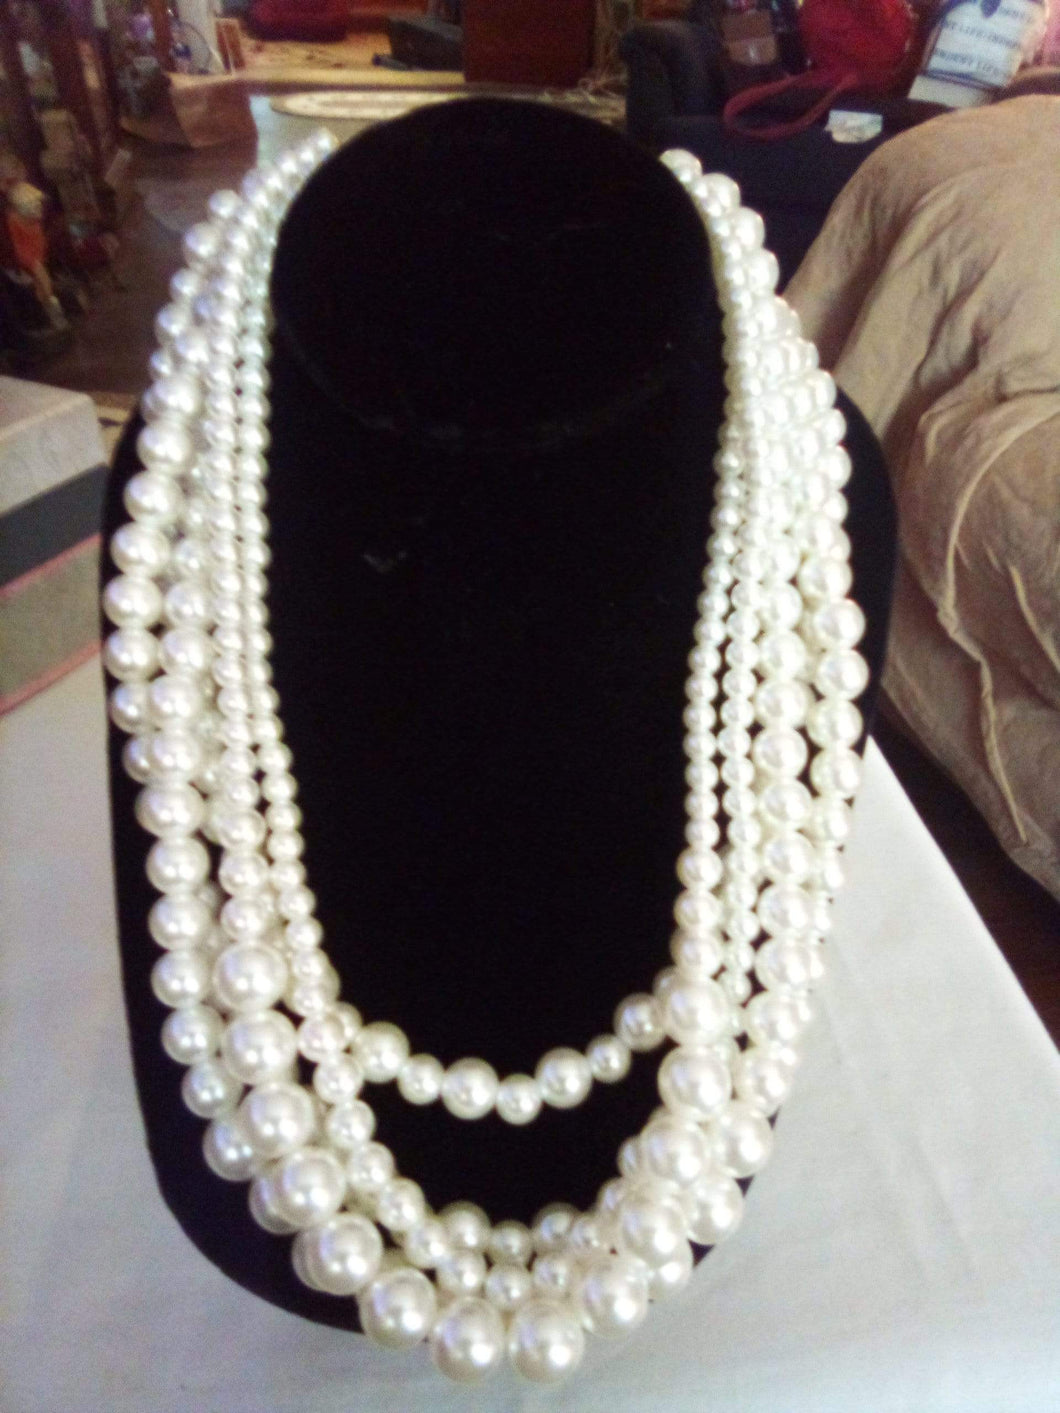 A four tier pearl like necklace - B&P'sringsnthings